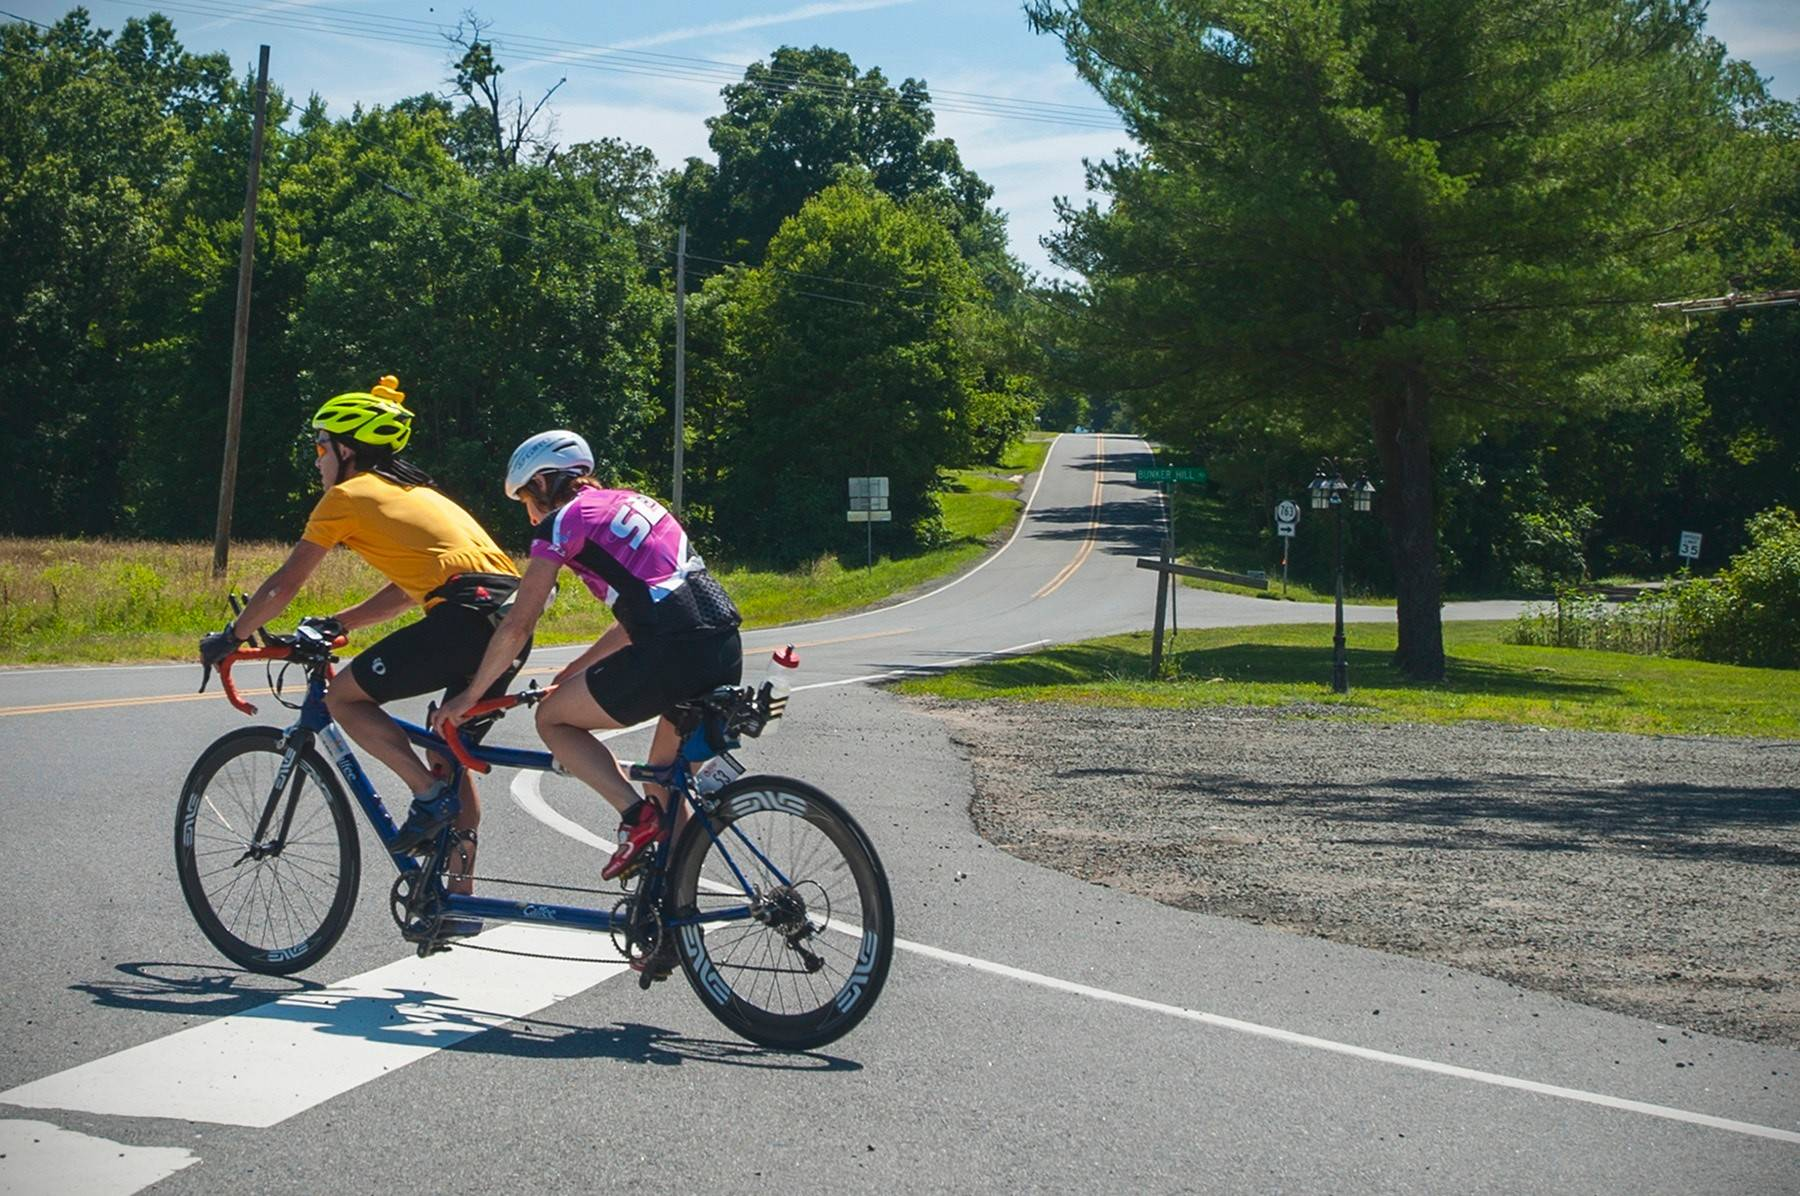 Kevin Streeter, left, guides Tina Ament during a training ride. Ament, who is blind, is training for the Ironman Triathlon in Hawaii.